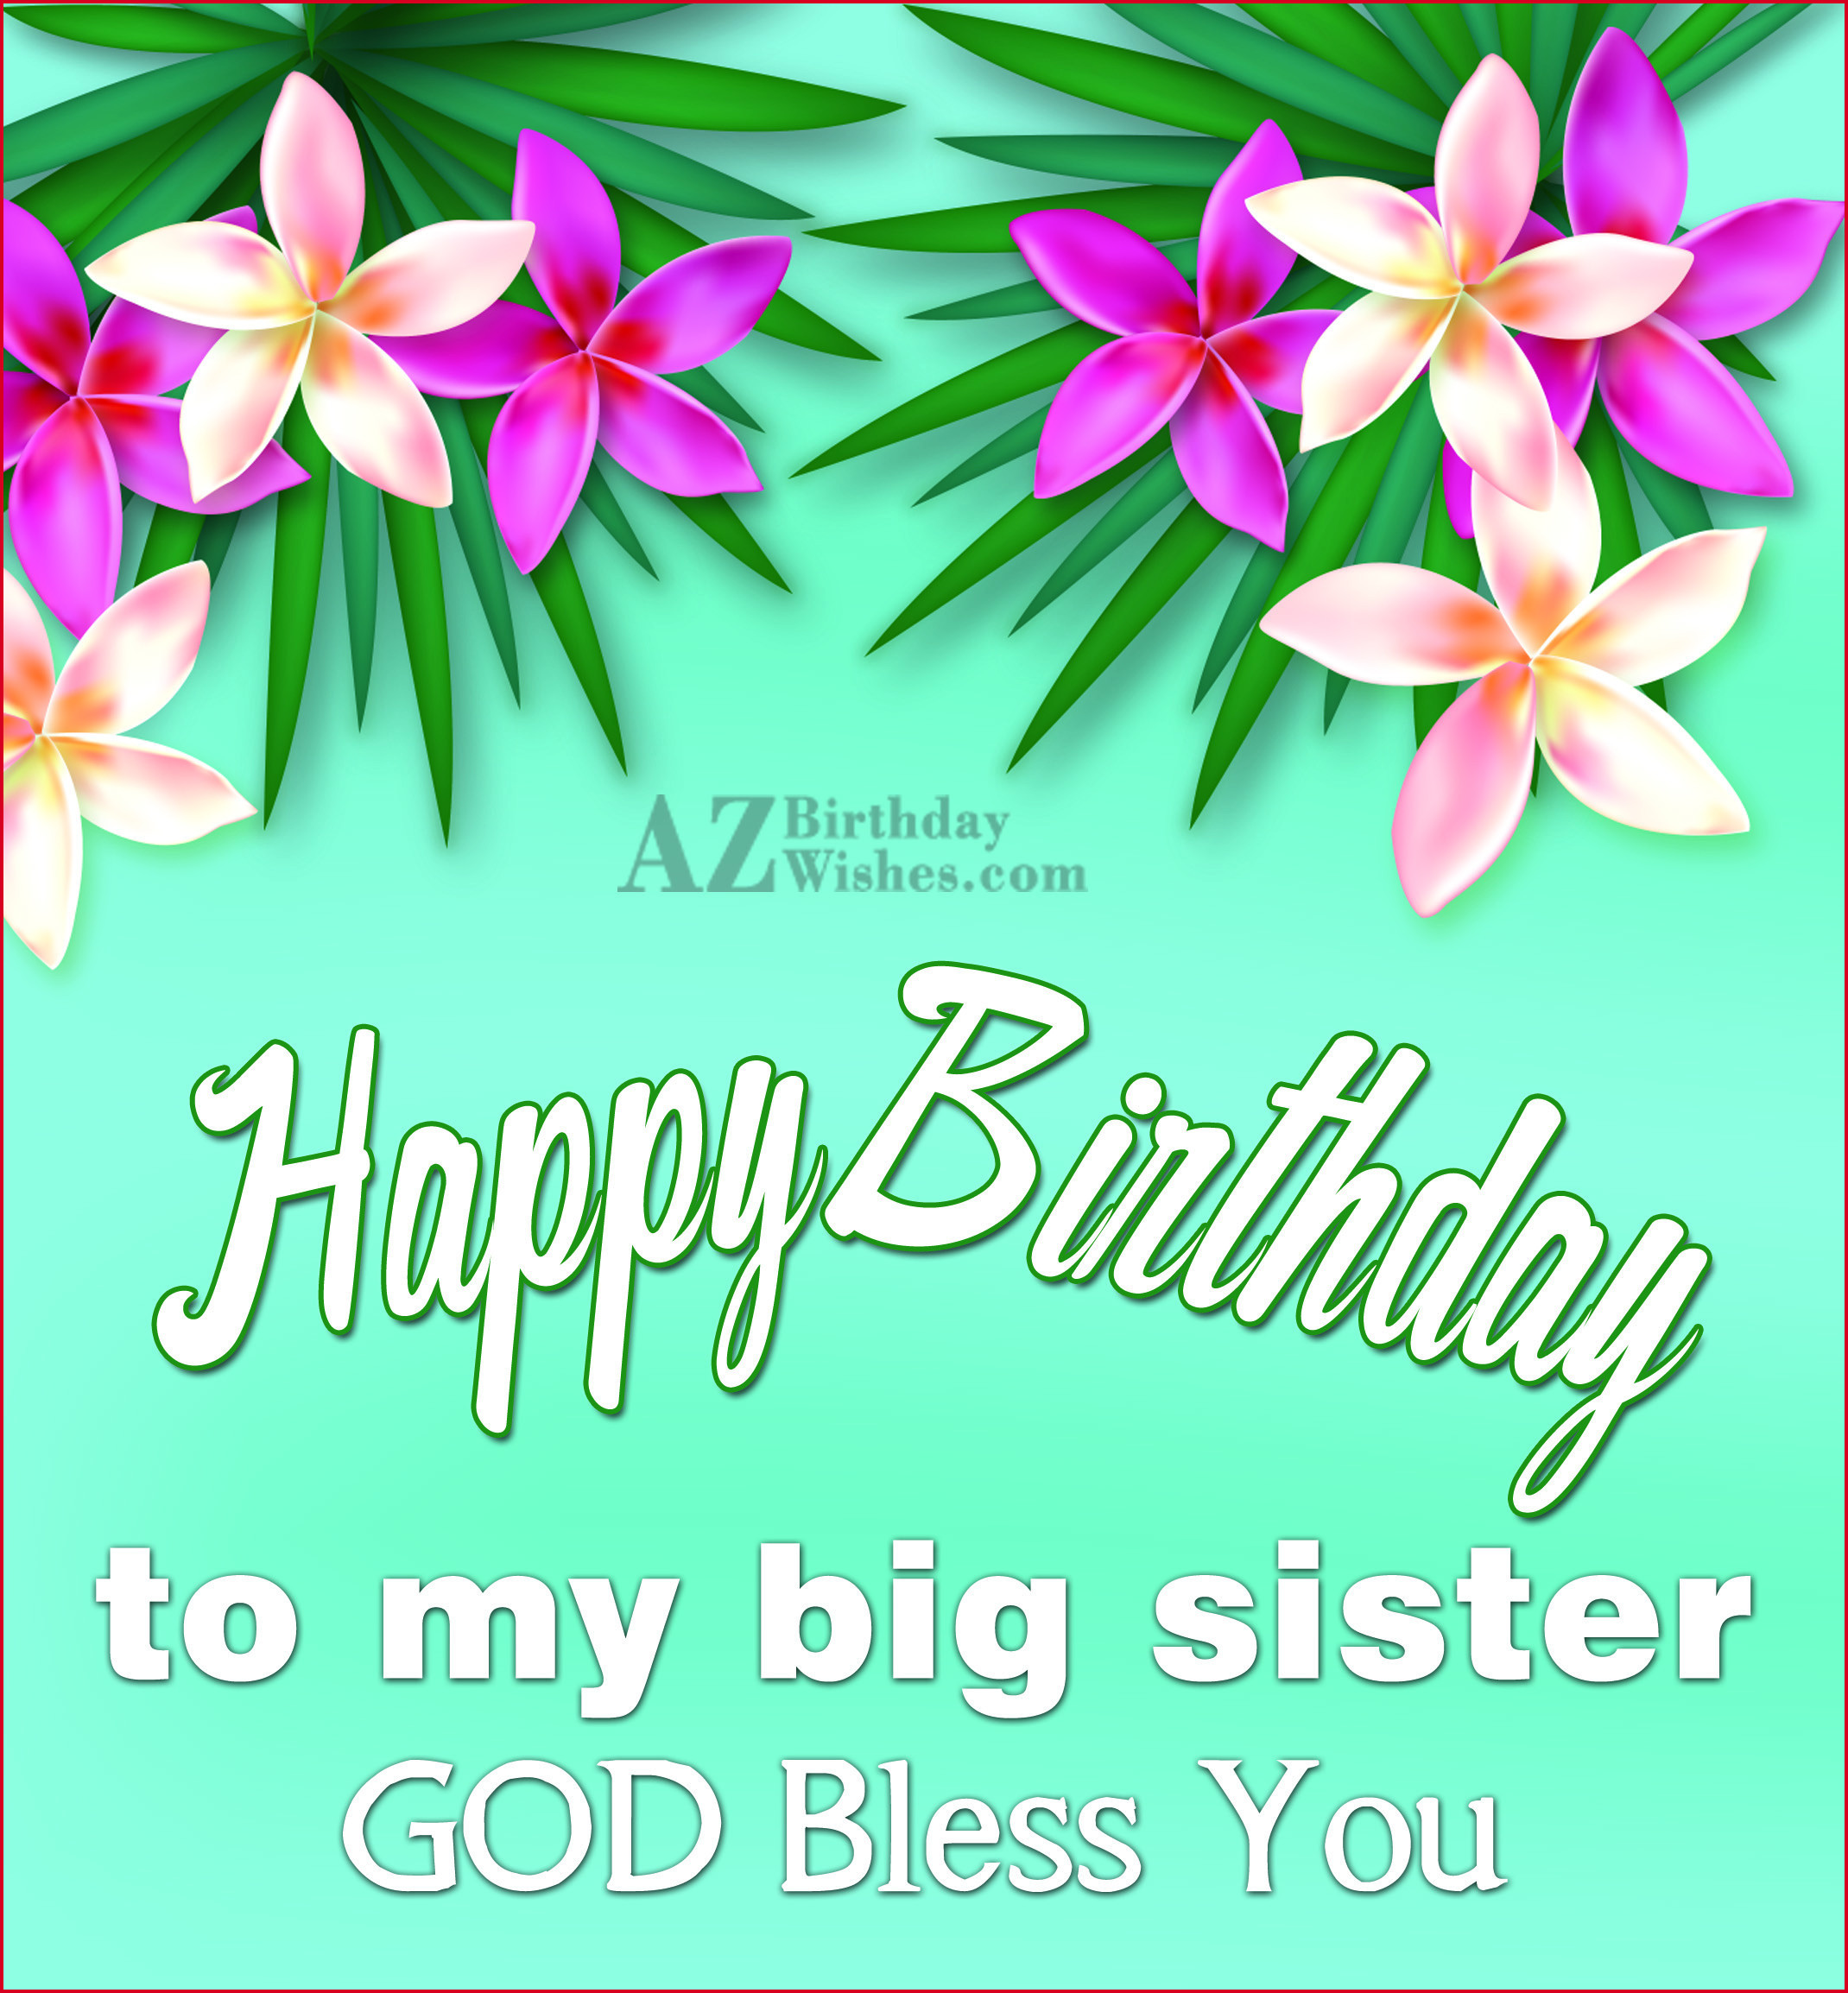 Amazing birthday card wallpaper for dear Sister god bless you